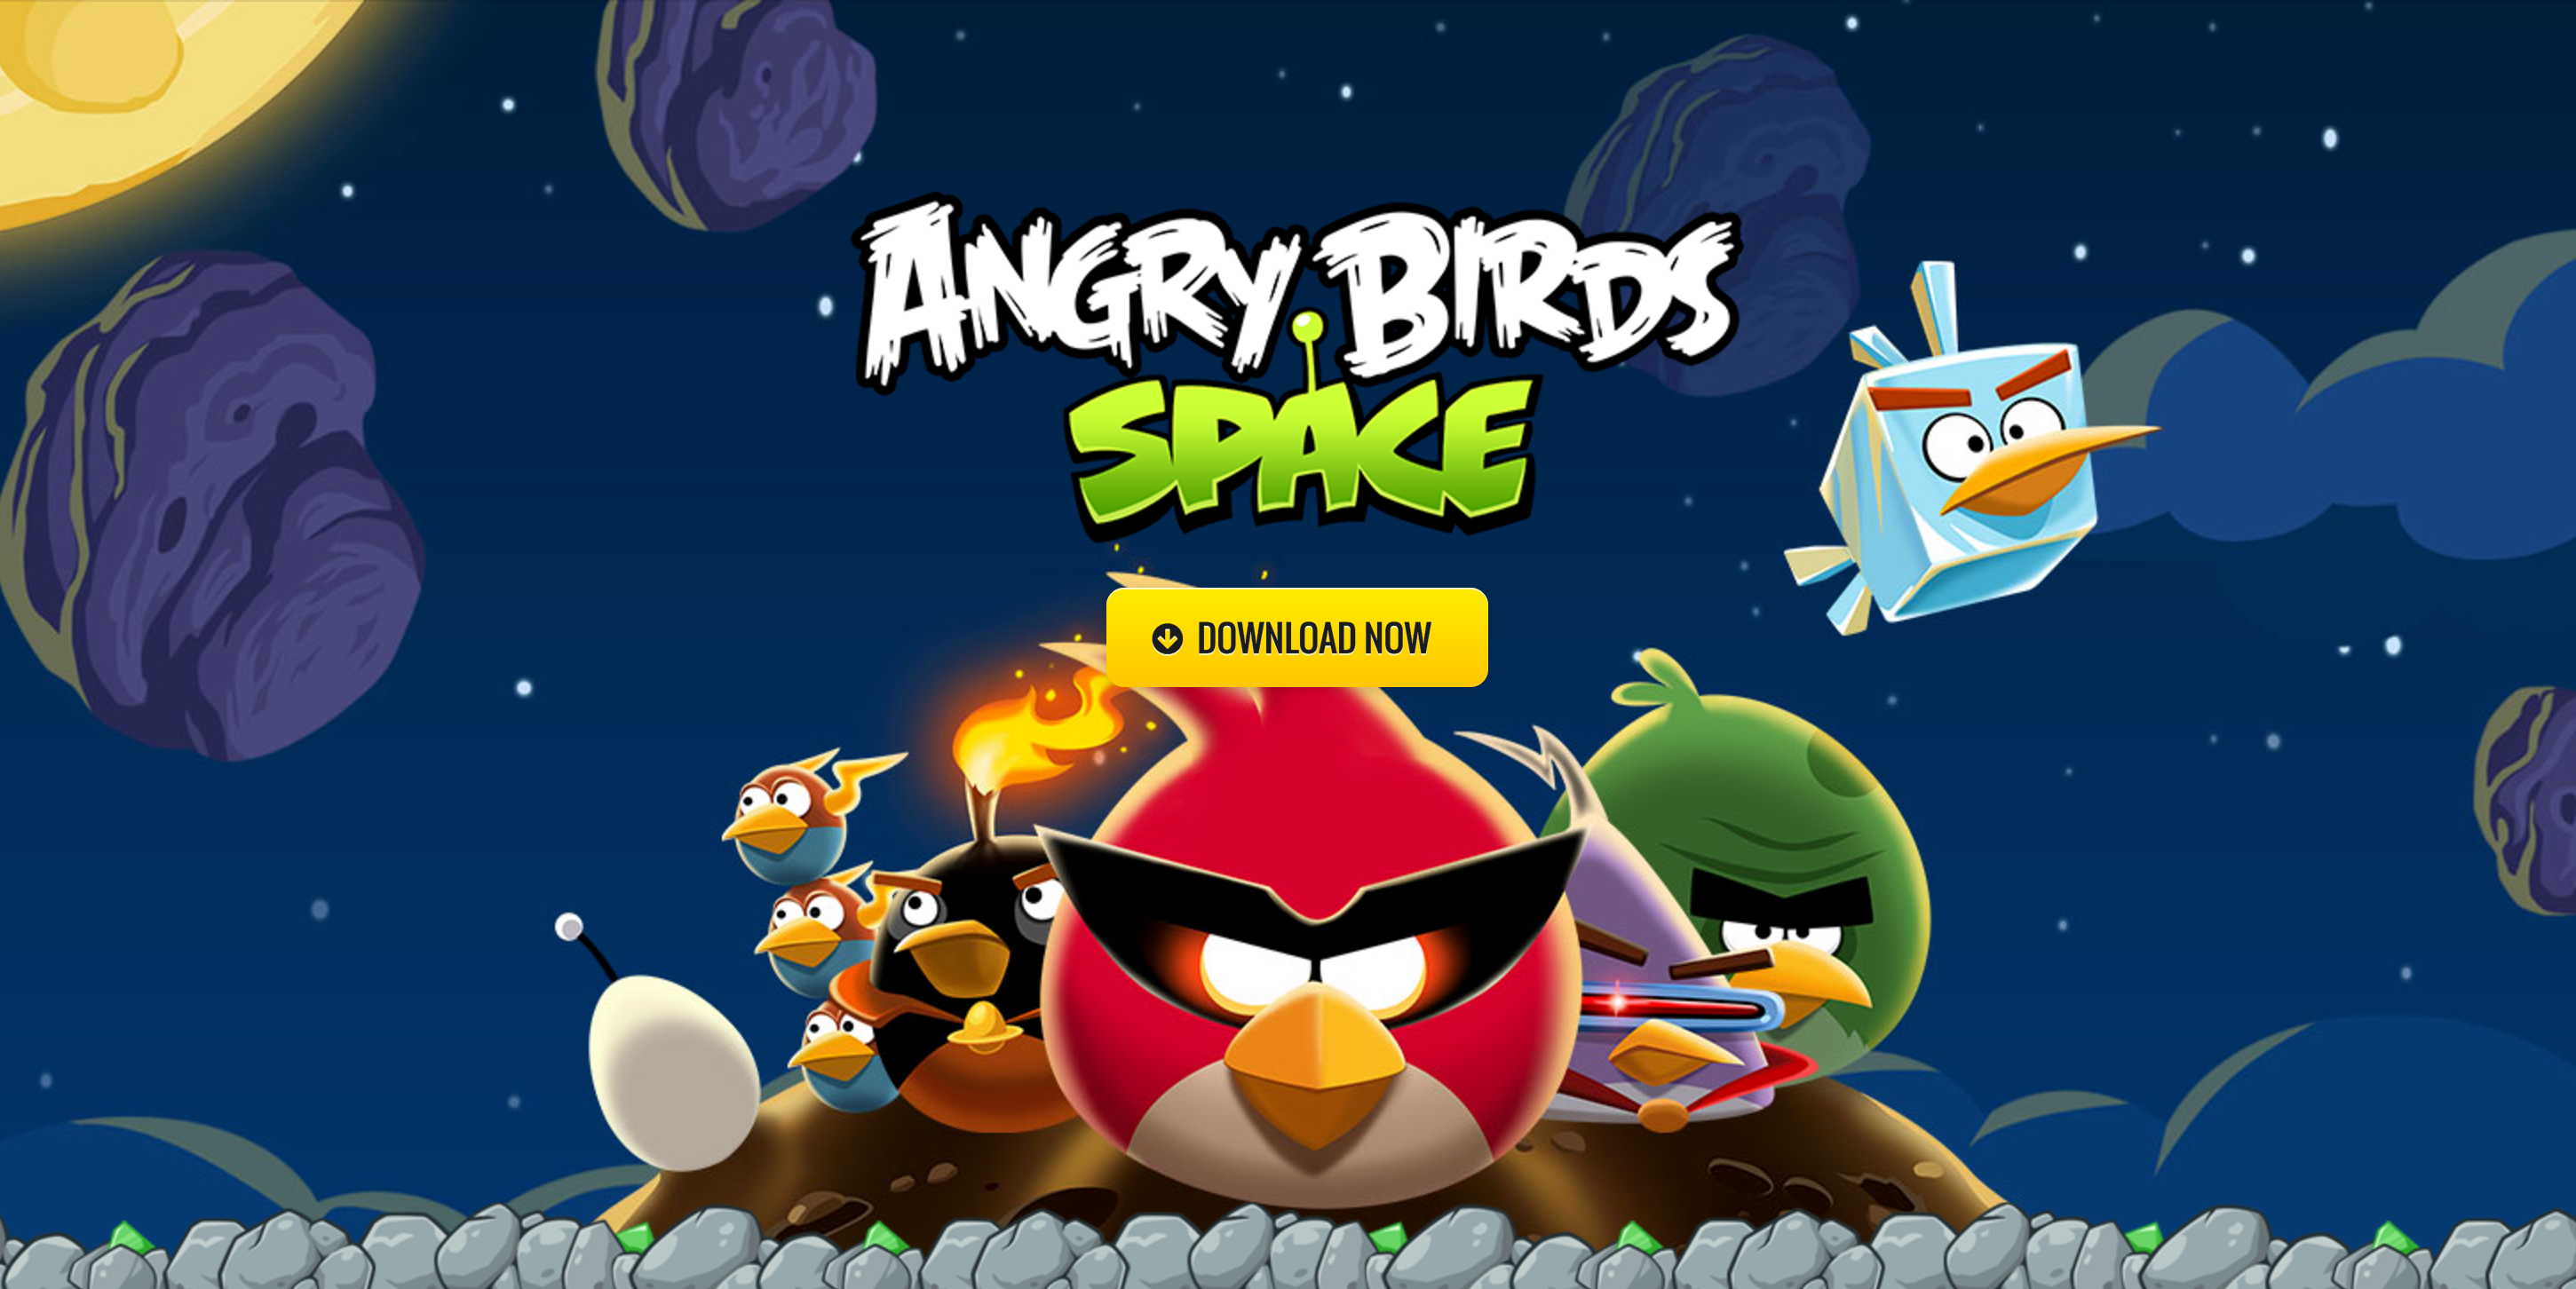 App Store Free App of the Week: Angry Birds Space goes free